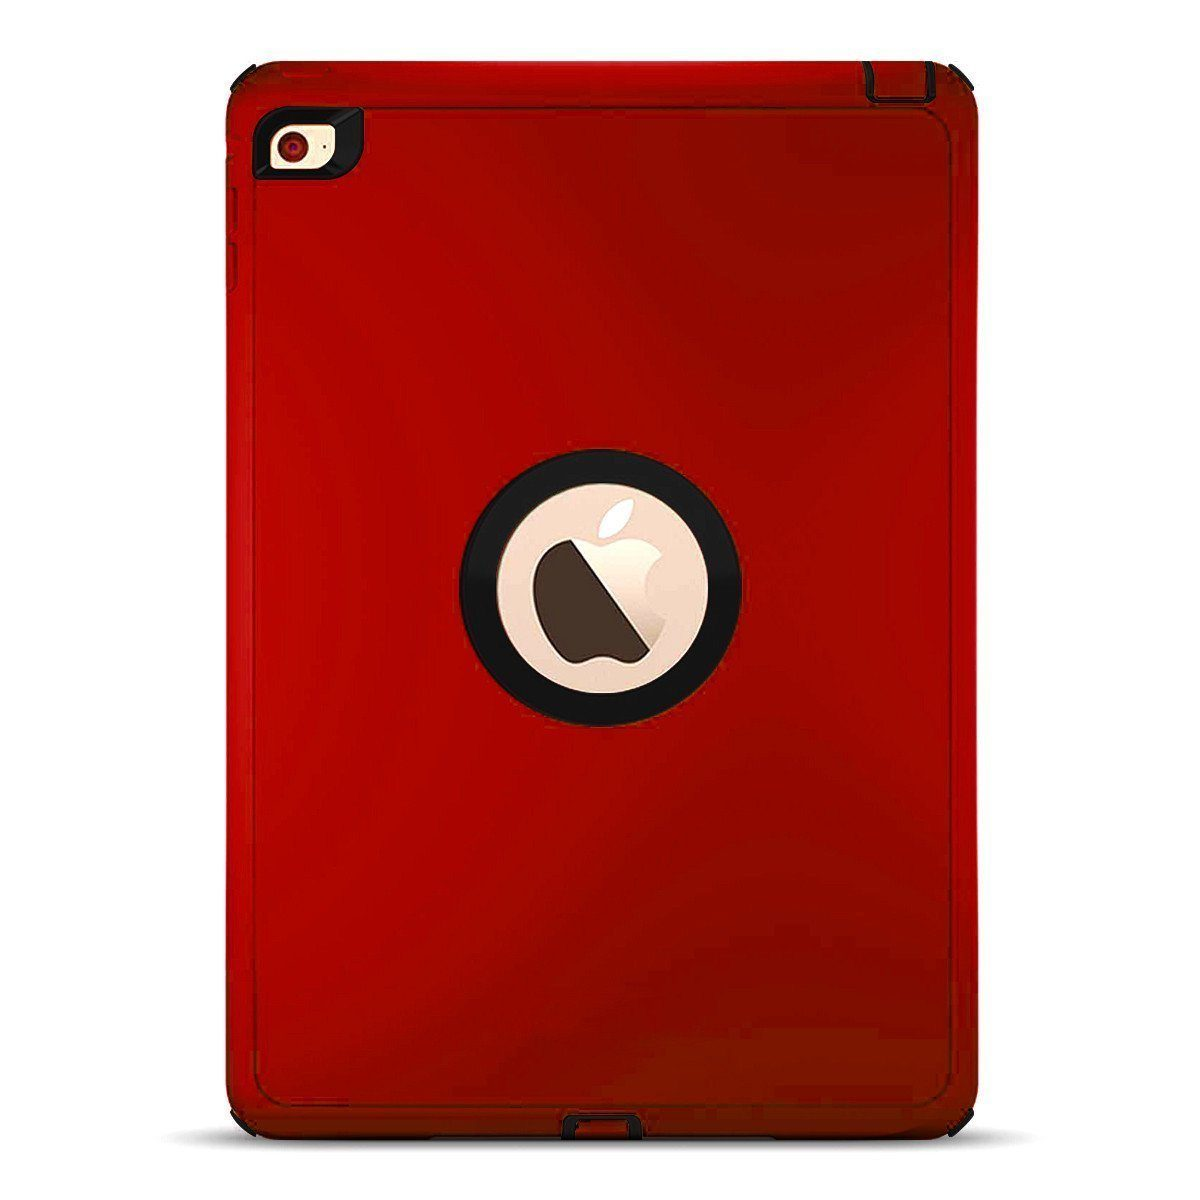 DualPro Protector for iPad 2/3/4 - Red & Black